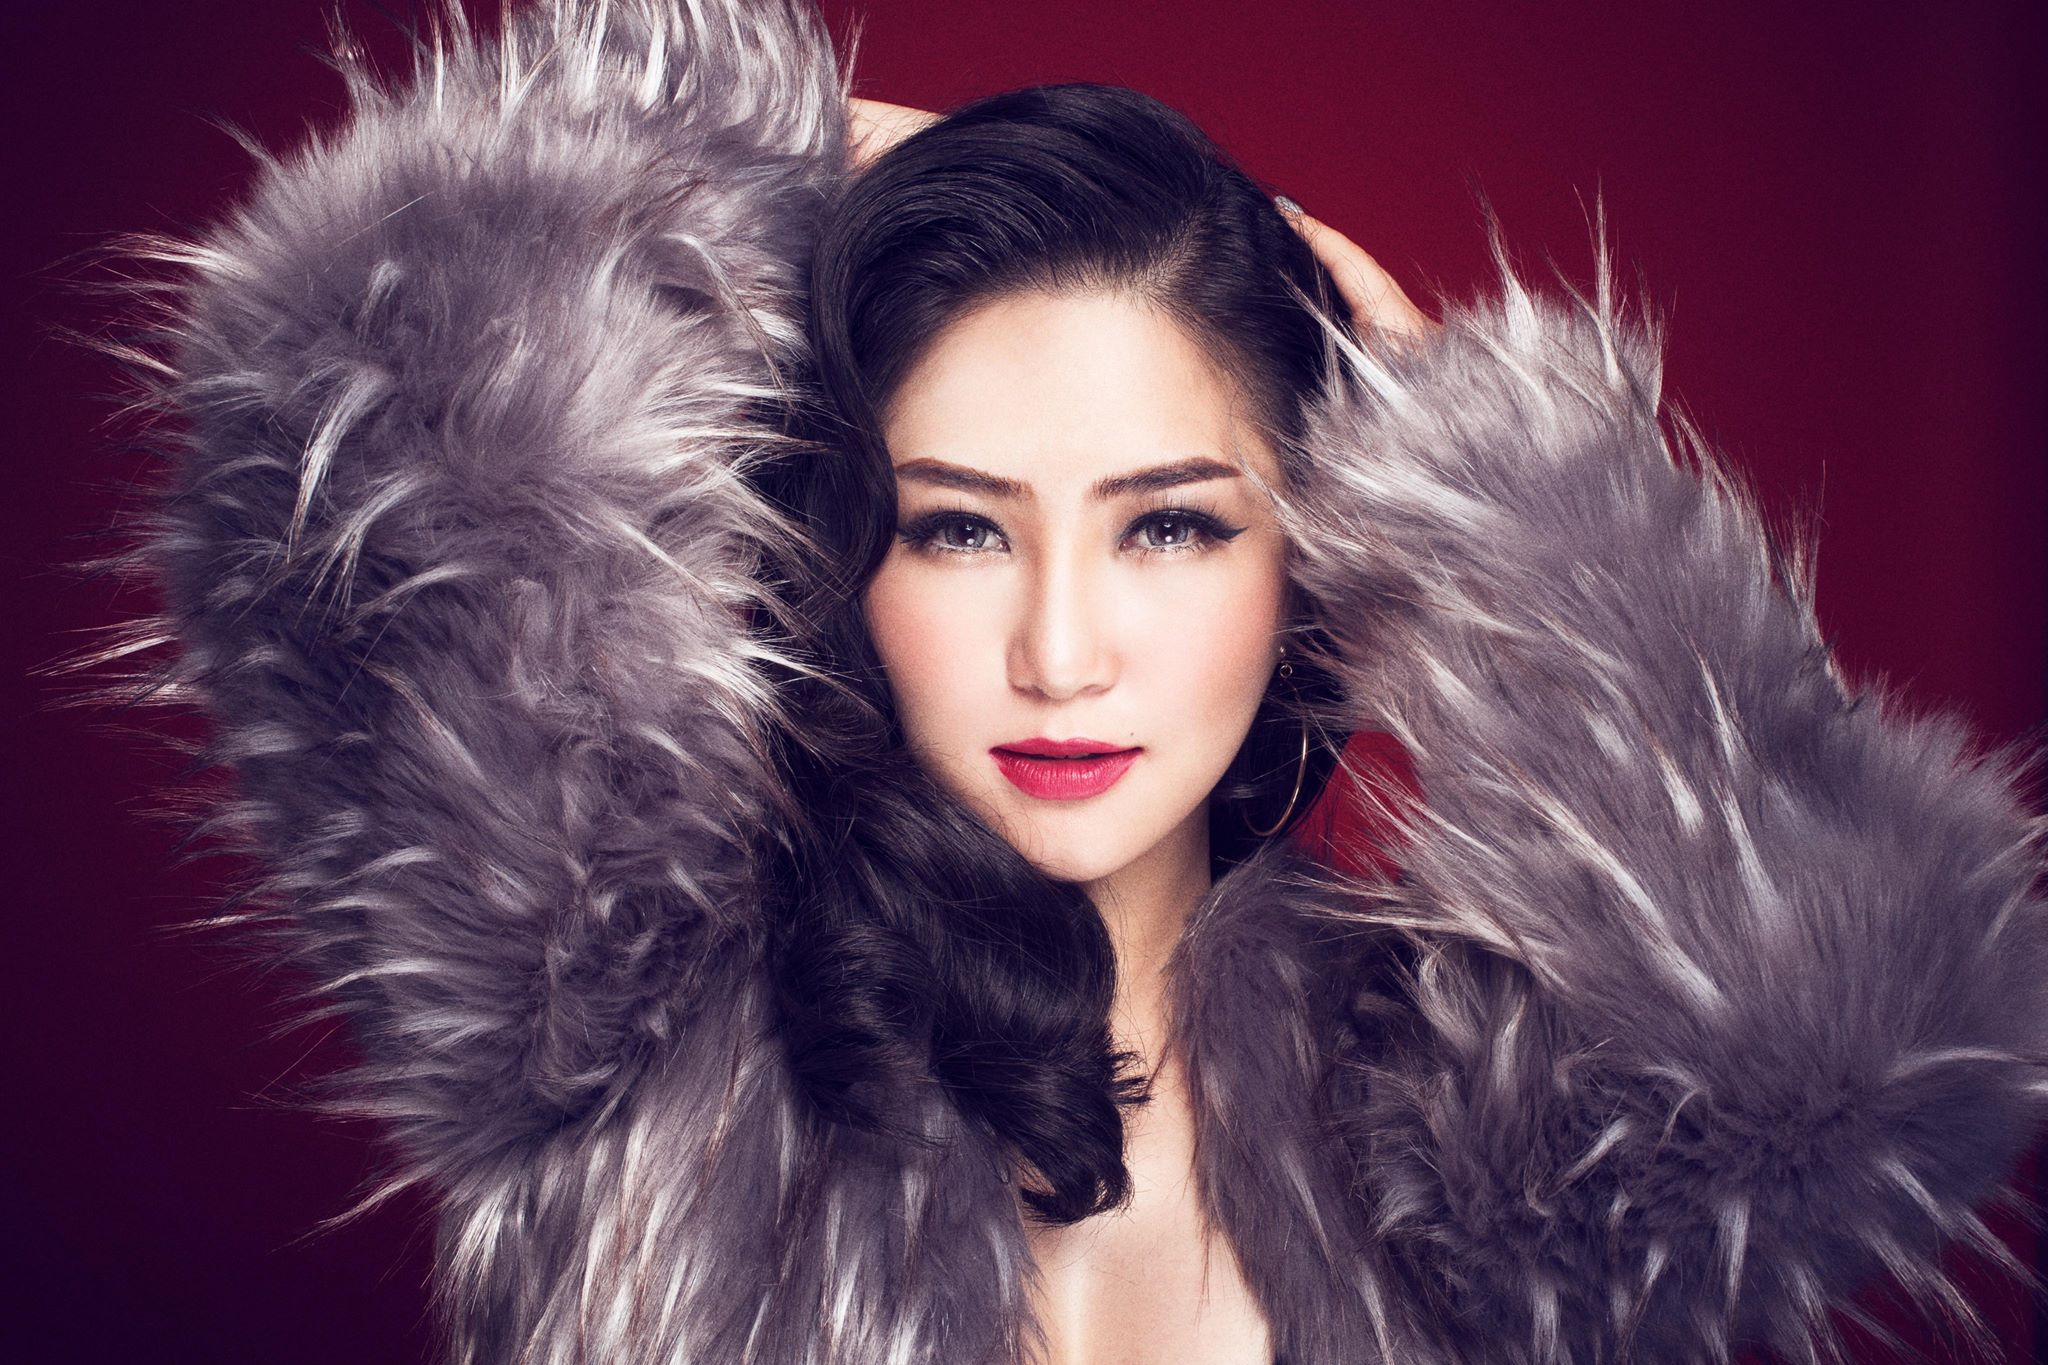 huong tram dien show cuoi cung truoc khi tam dung su nghiep sang my hinh anh 1